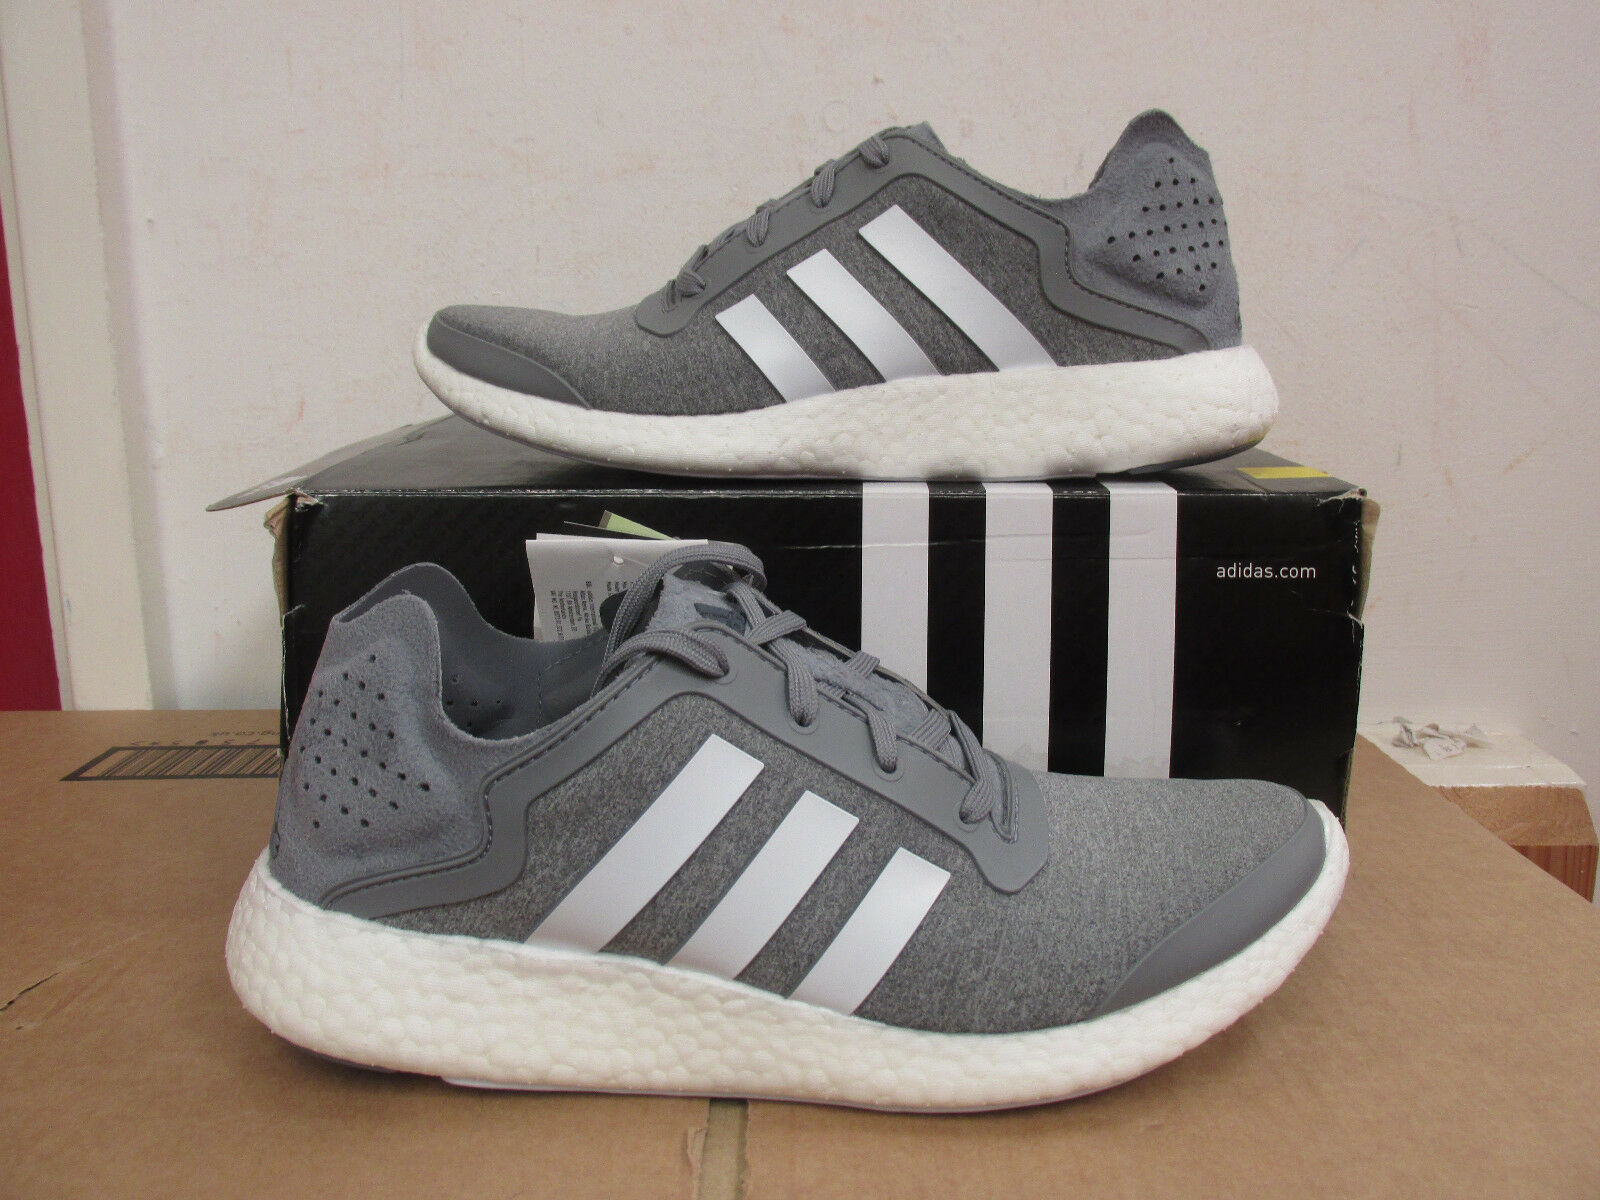 Adidas Pureboost Womens M22137 Running Trainers Sneakers shoes CLEARANCE